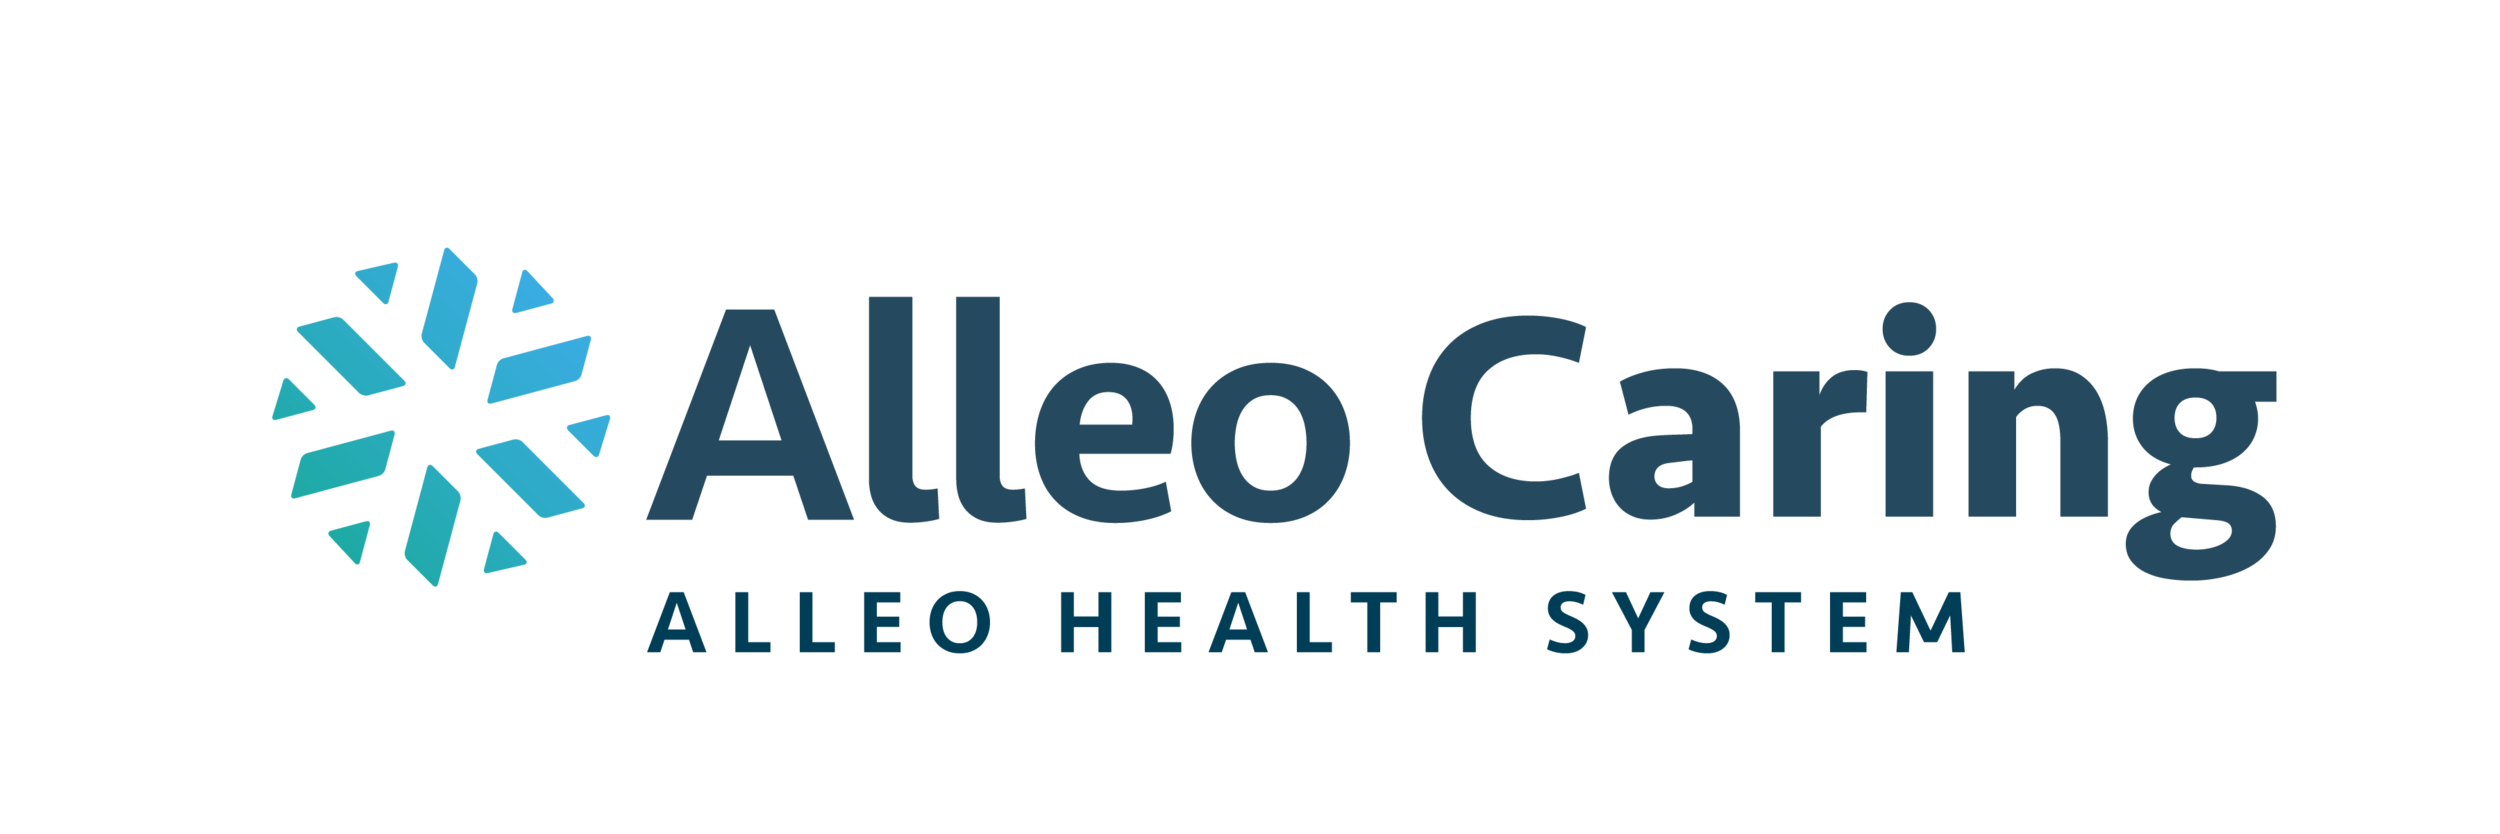 Alleo Caring - Alleo Caring assists patients and families in following discharge plans, medication management, and care coordination with primary care clinicians. The service begins with initial contact to you or your caregiver within two days after you have been discharged from your stay in a skilled nursing facility. This is followed by a visit from Alleo's clinical staff within 7-14 days (timeframe depends on medical condition).AlleoCaring.org